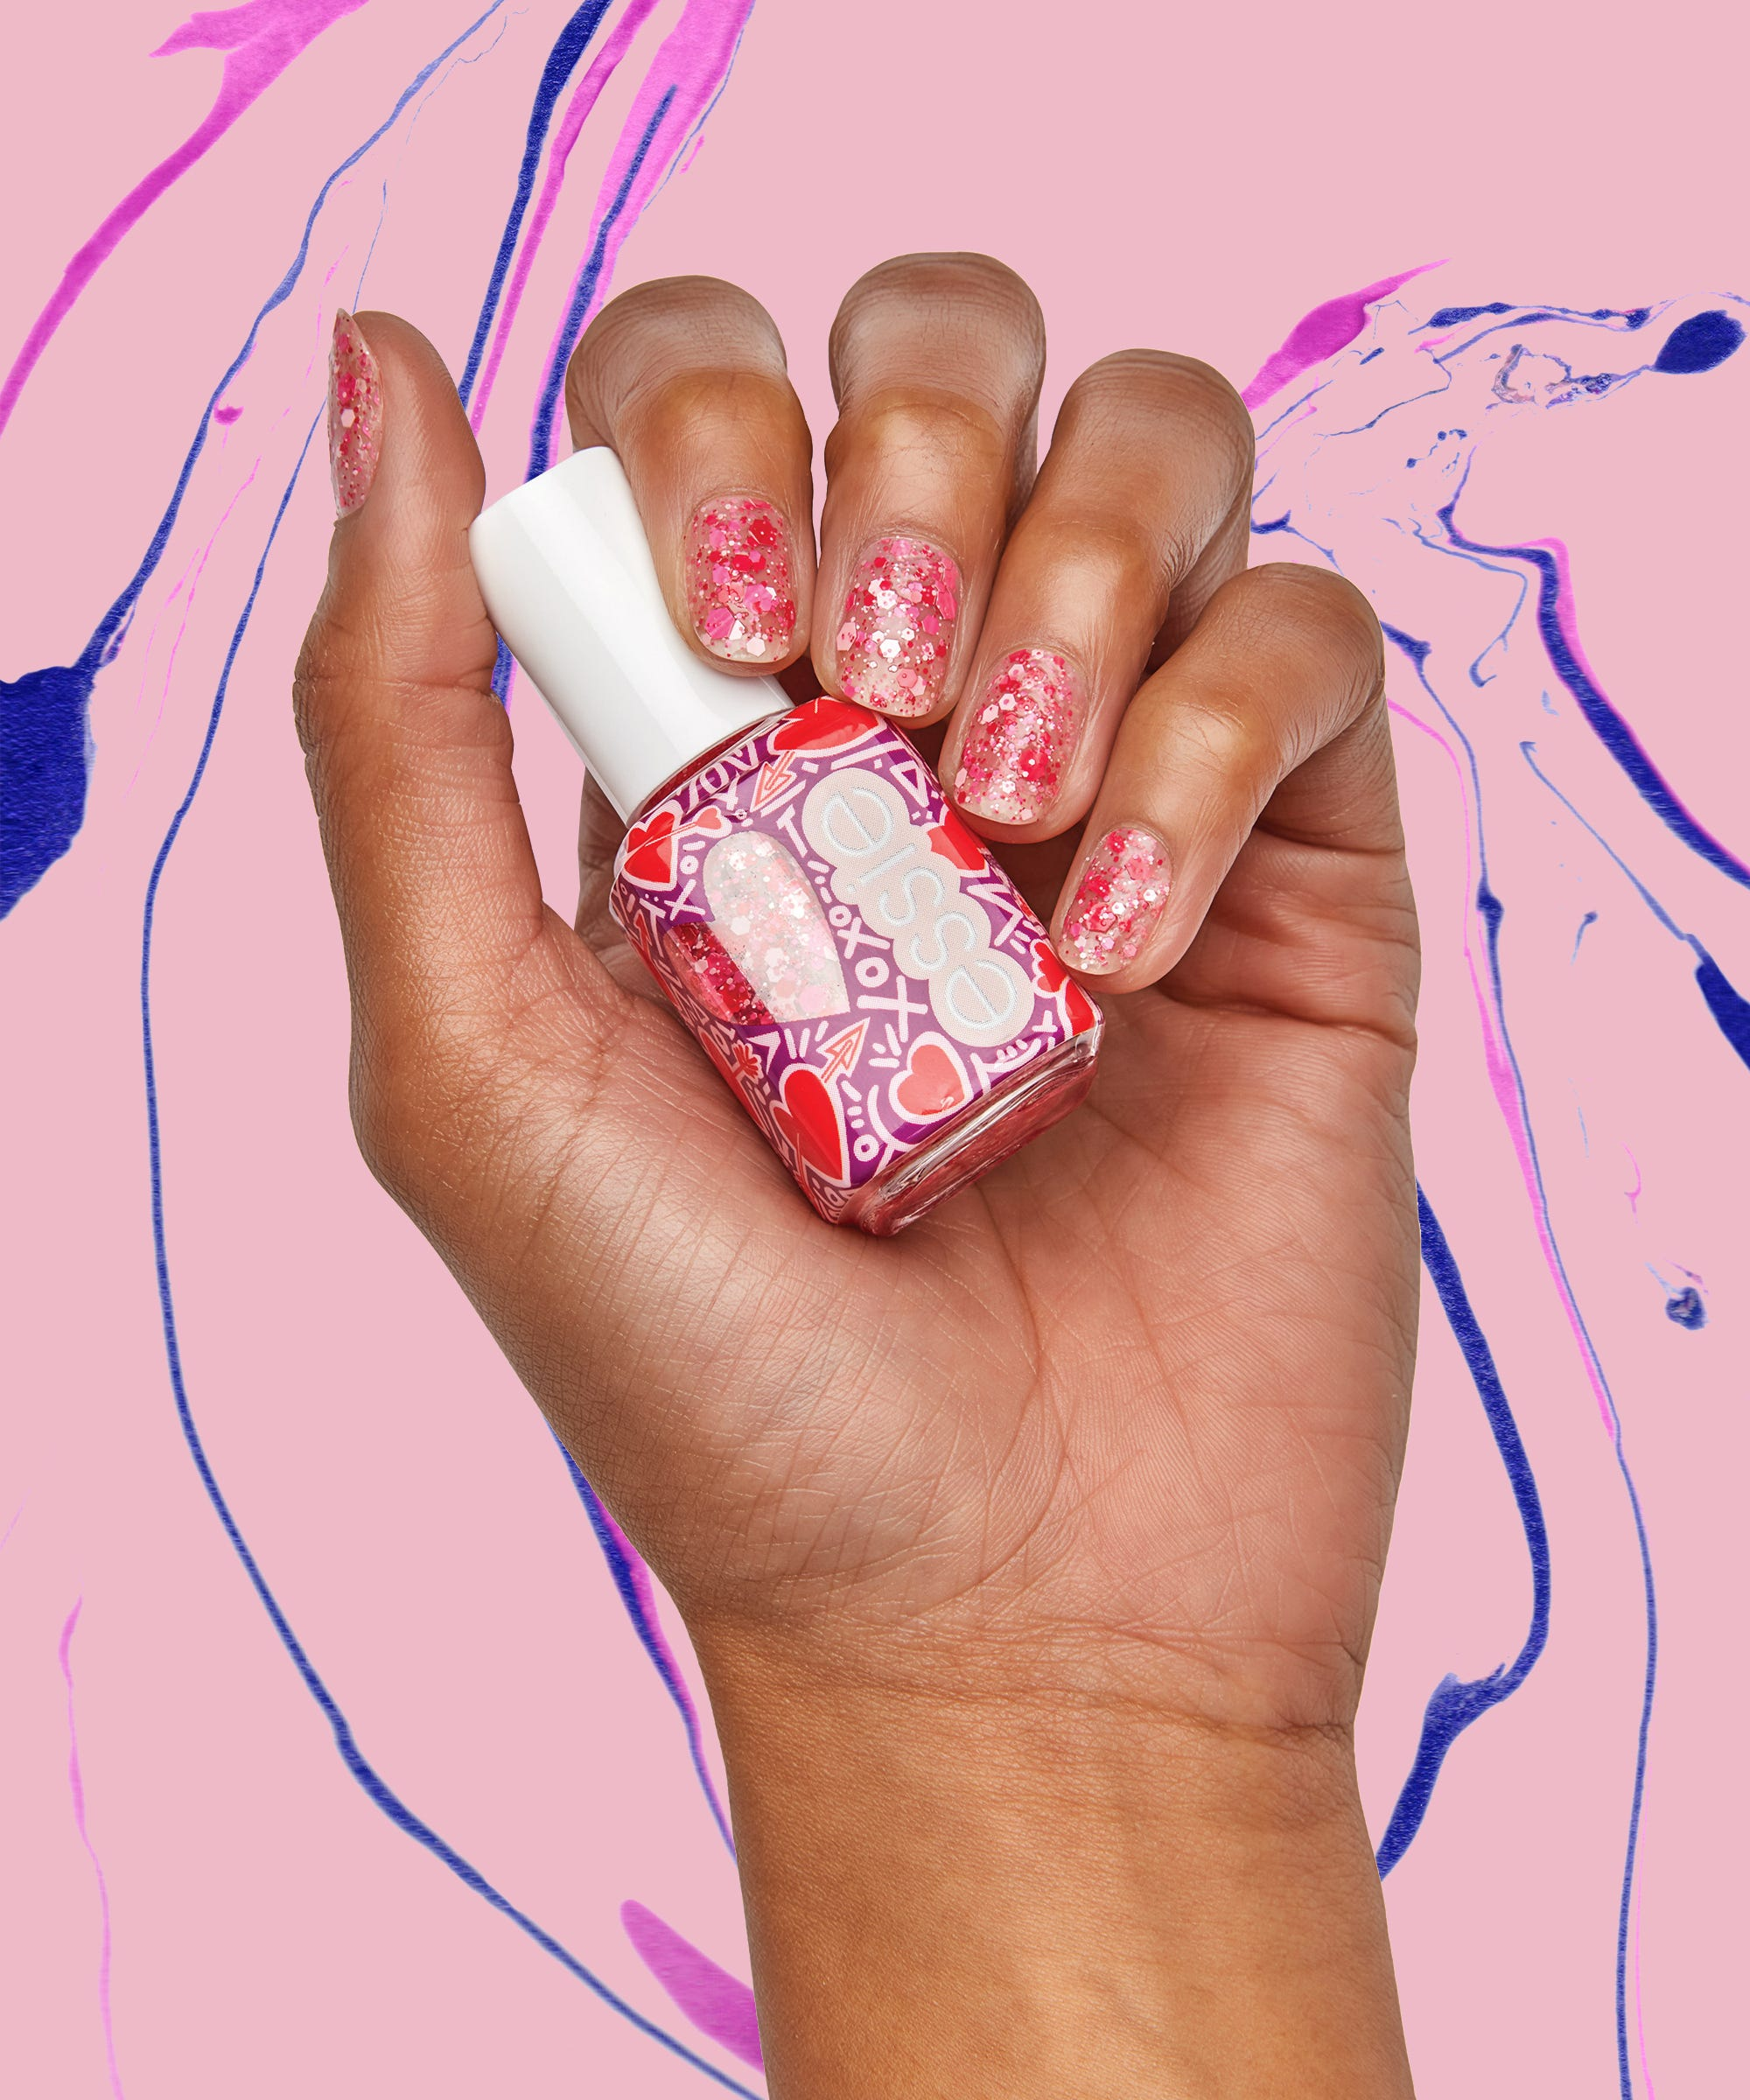 Essie's Brand-New Valentine's Day Nail Polishes Are Sparkly, Sweet, & Only $9